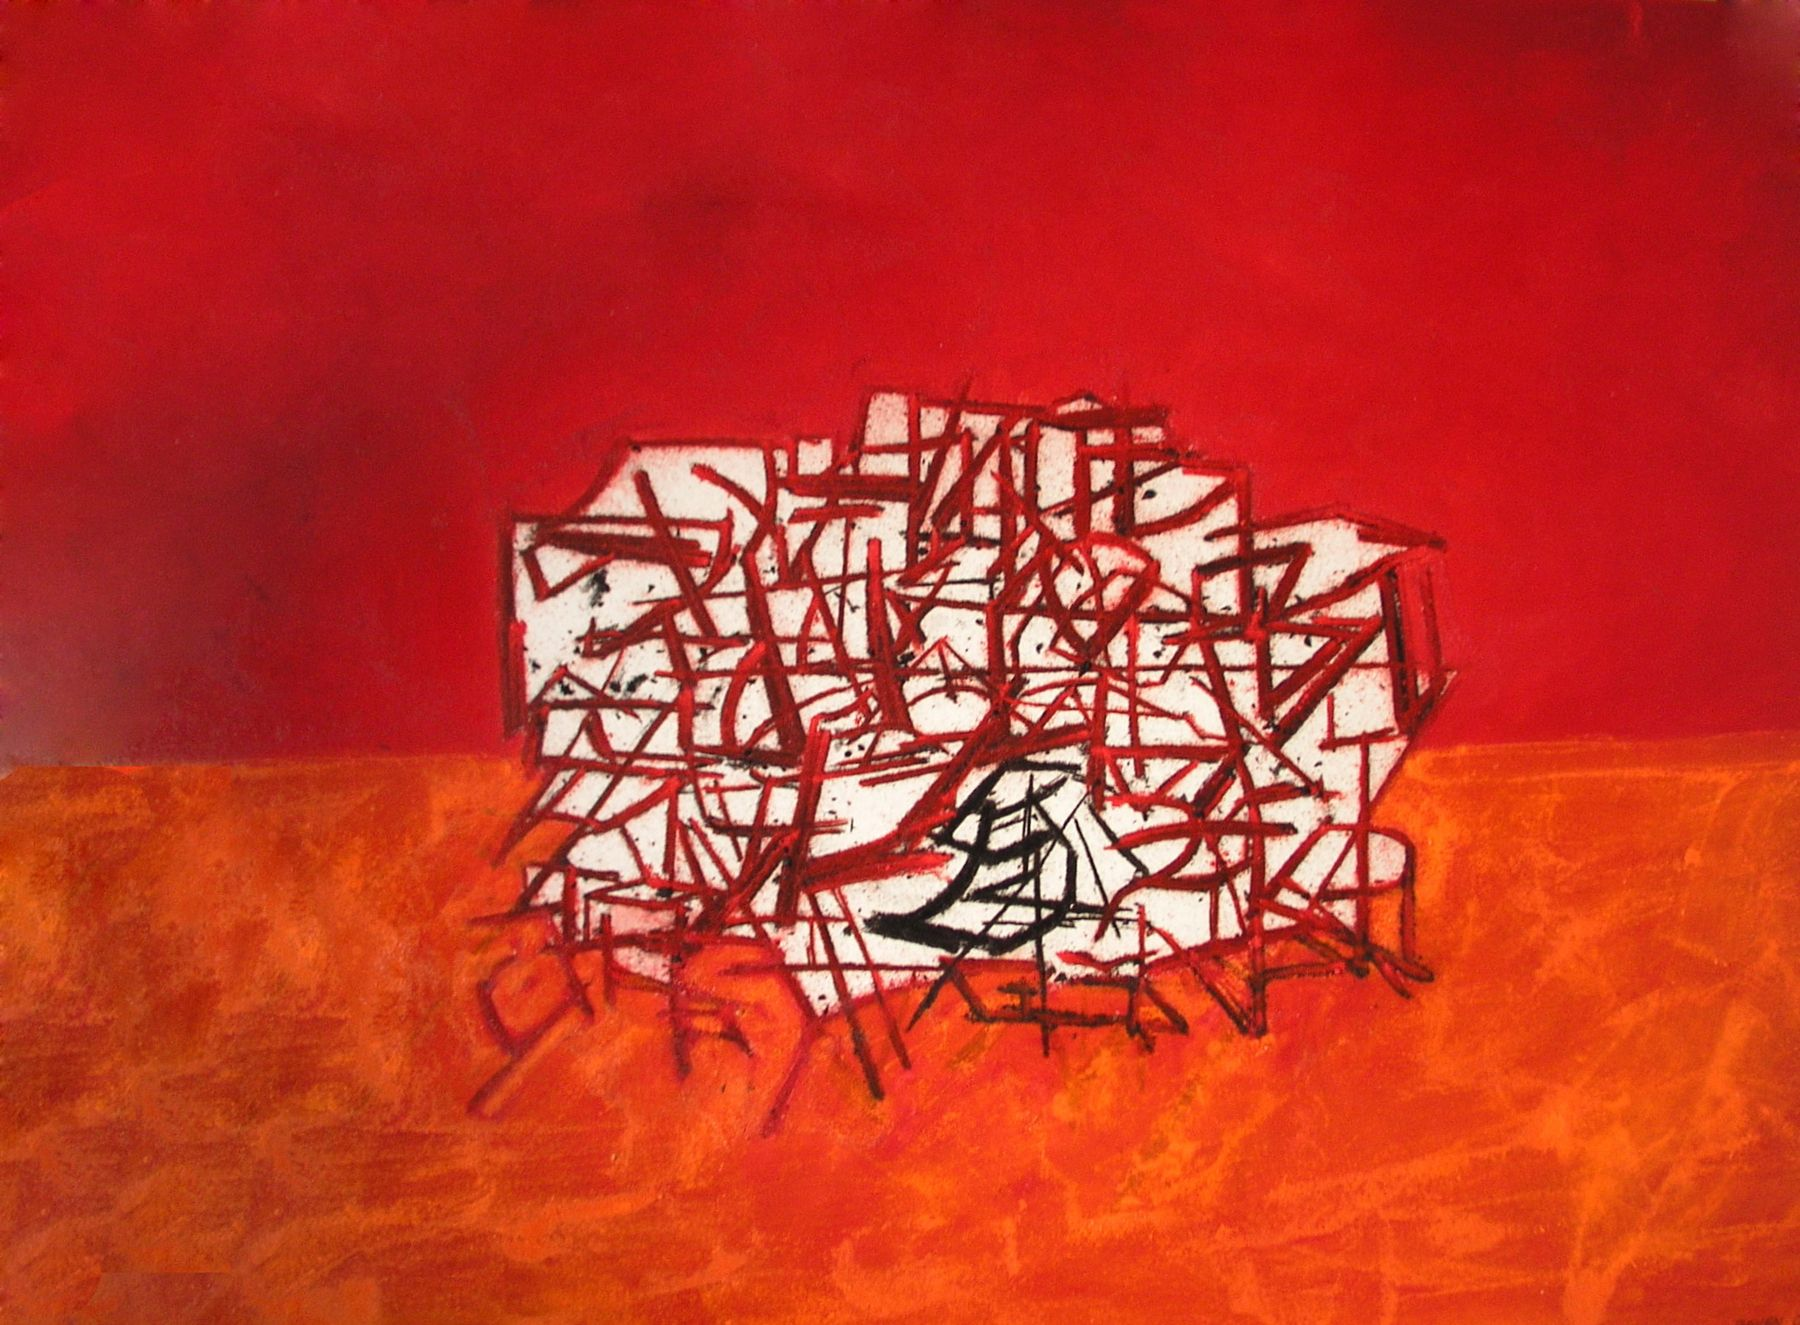 Tony Bevan, Still Life Red, 2009